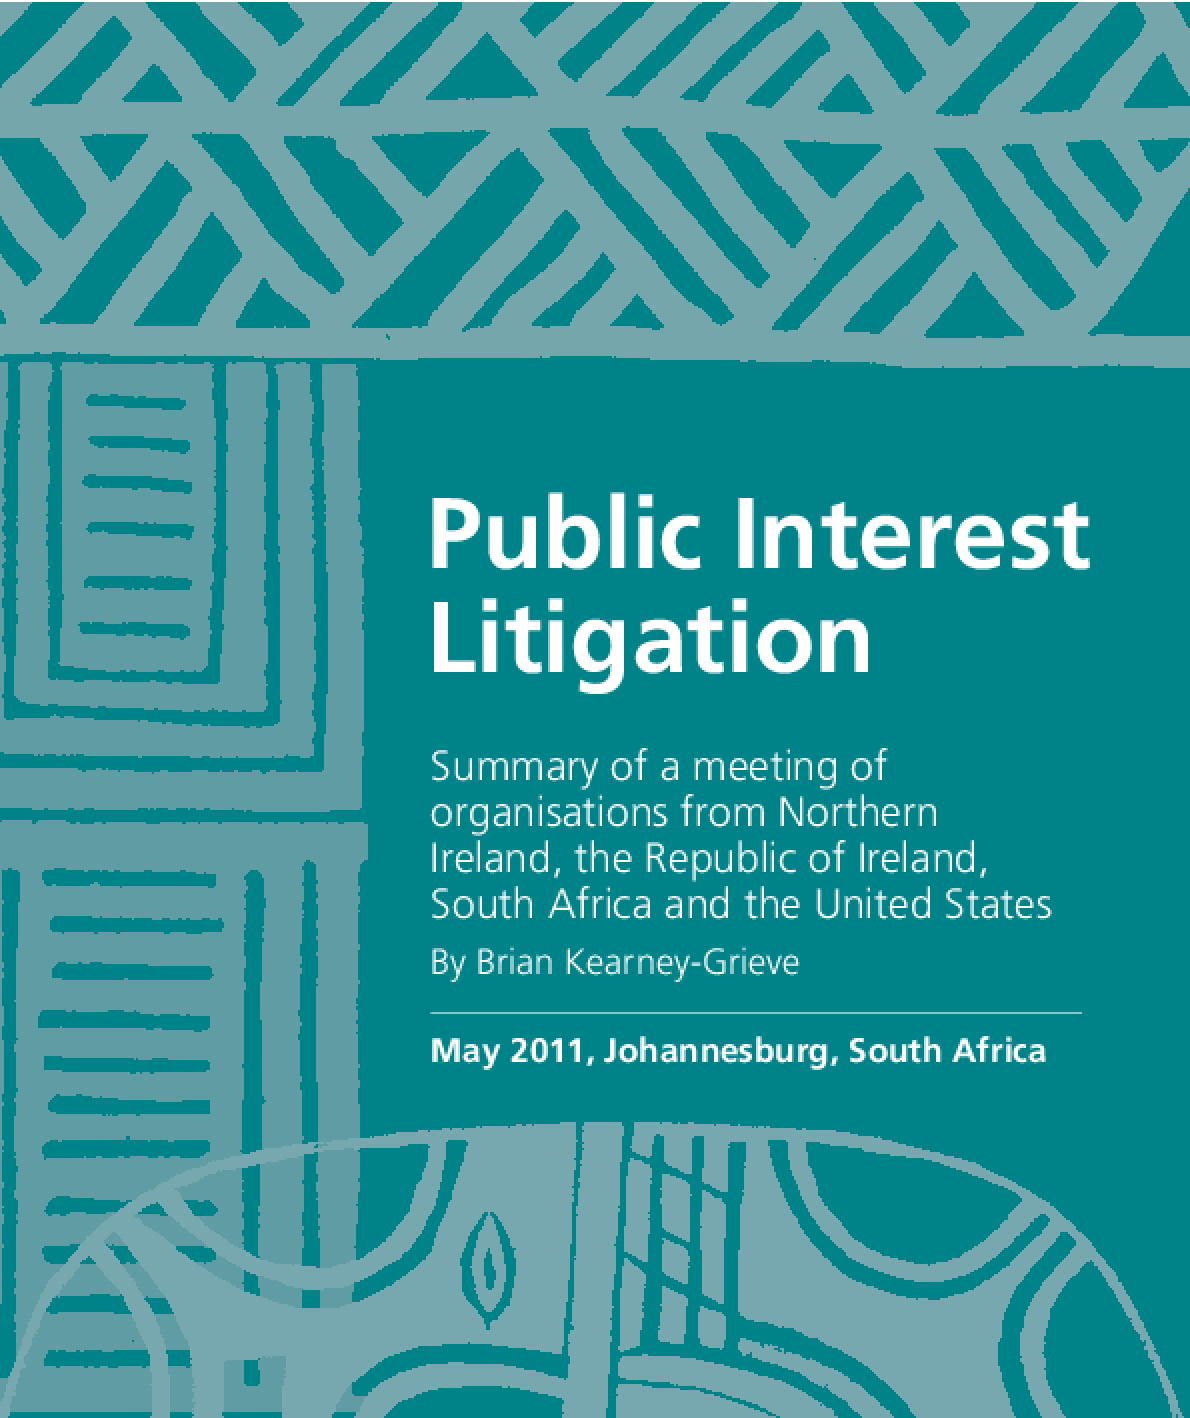 Public Interest Litigation: Summary of a Meeting of Organisations From Northern Ireland, the Republic of Ireland, South Africa and the United States